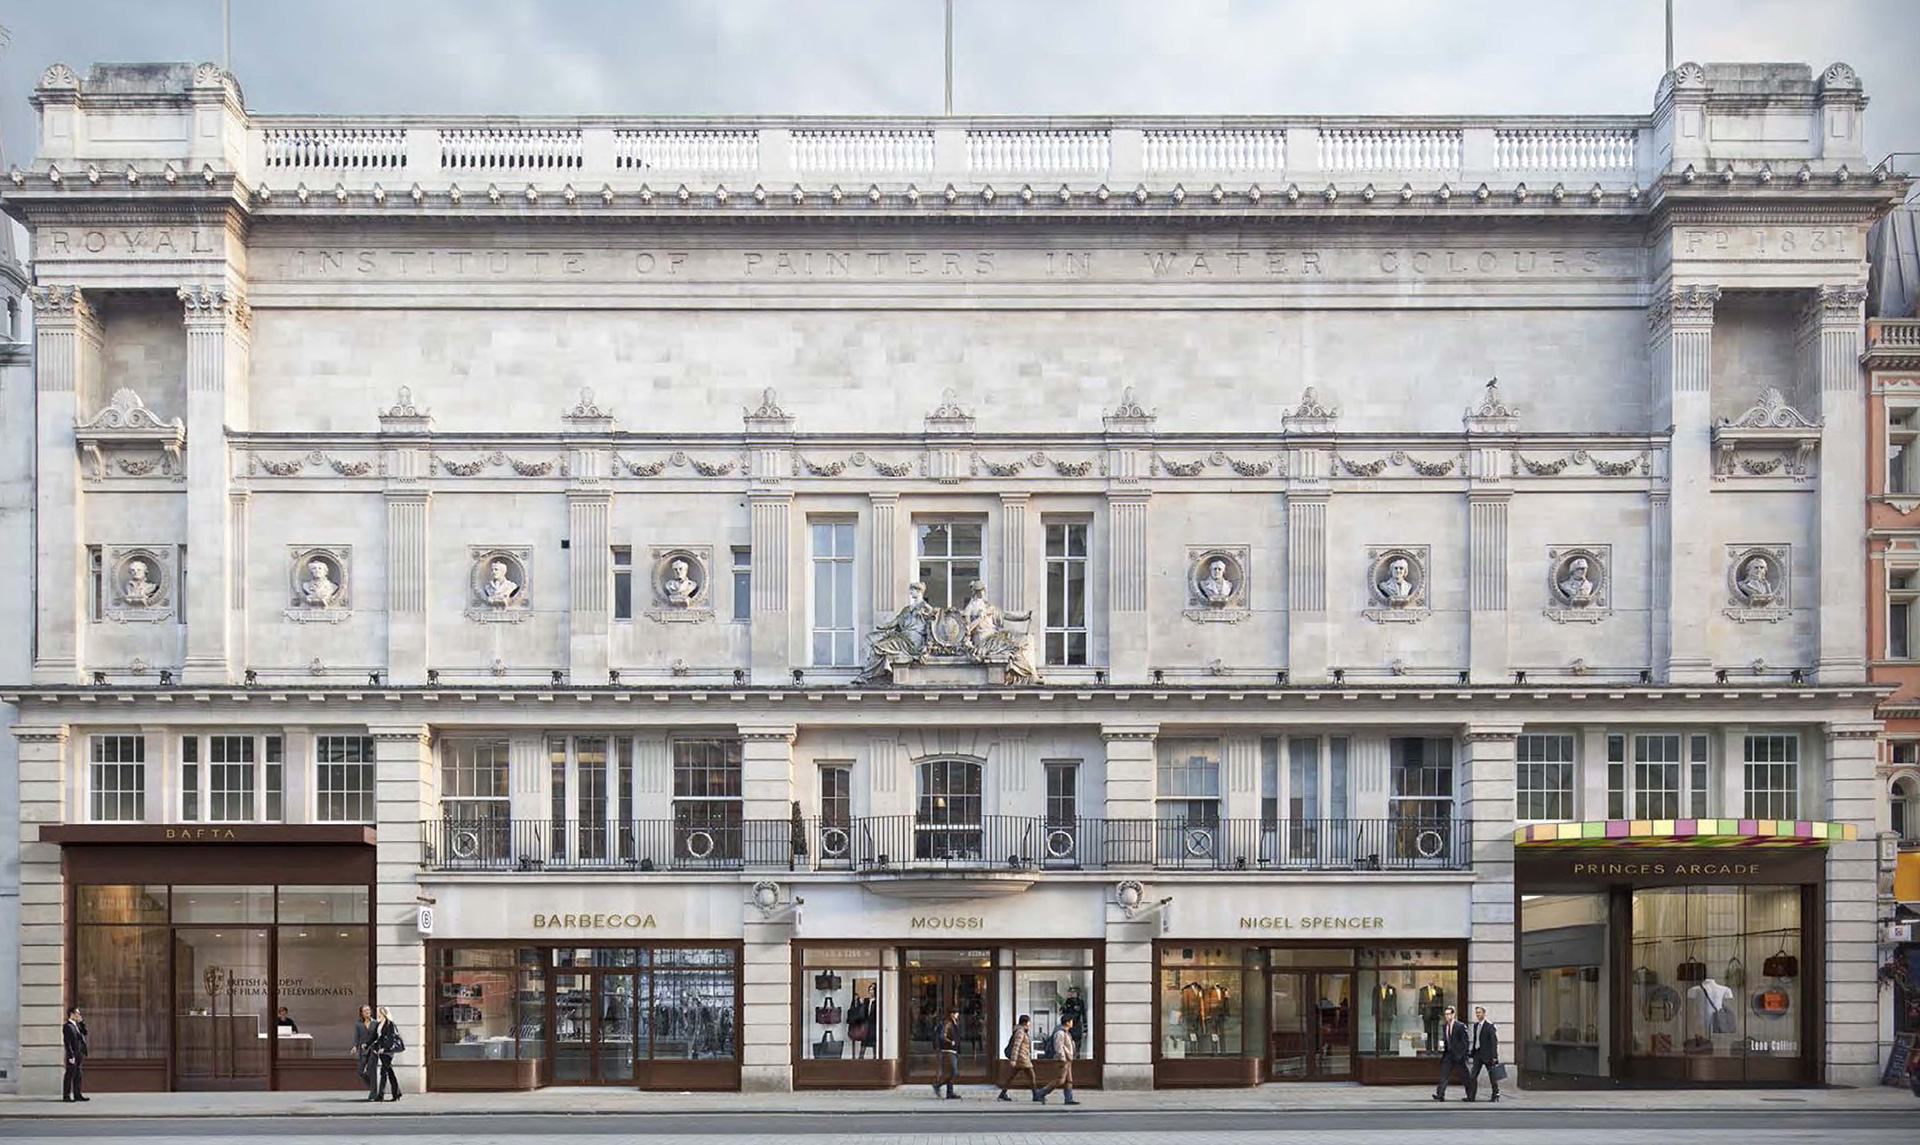 Proposed Elevation of BAFTA's 195 Piccadilly by Benedetti Architects  | BAFTA headquarters at 195 Piccadilly| Benedetti Architects| STIR